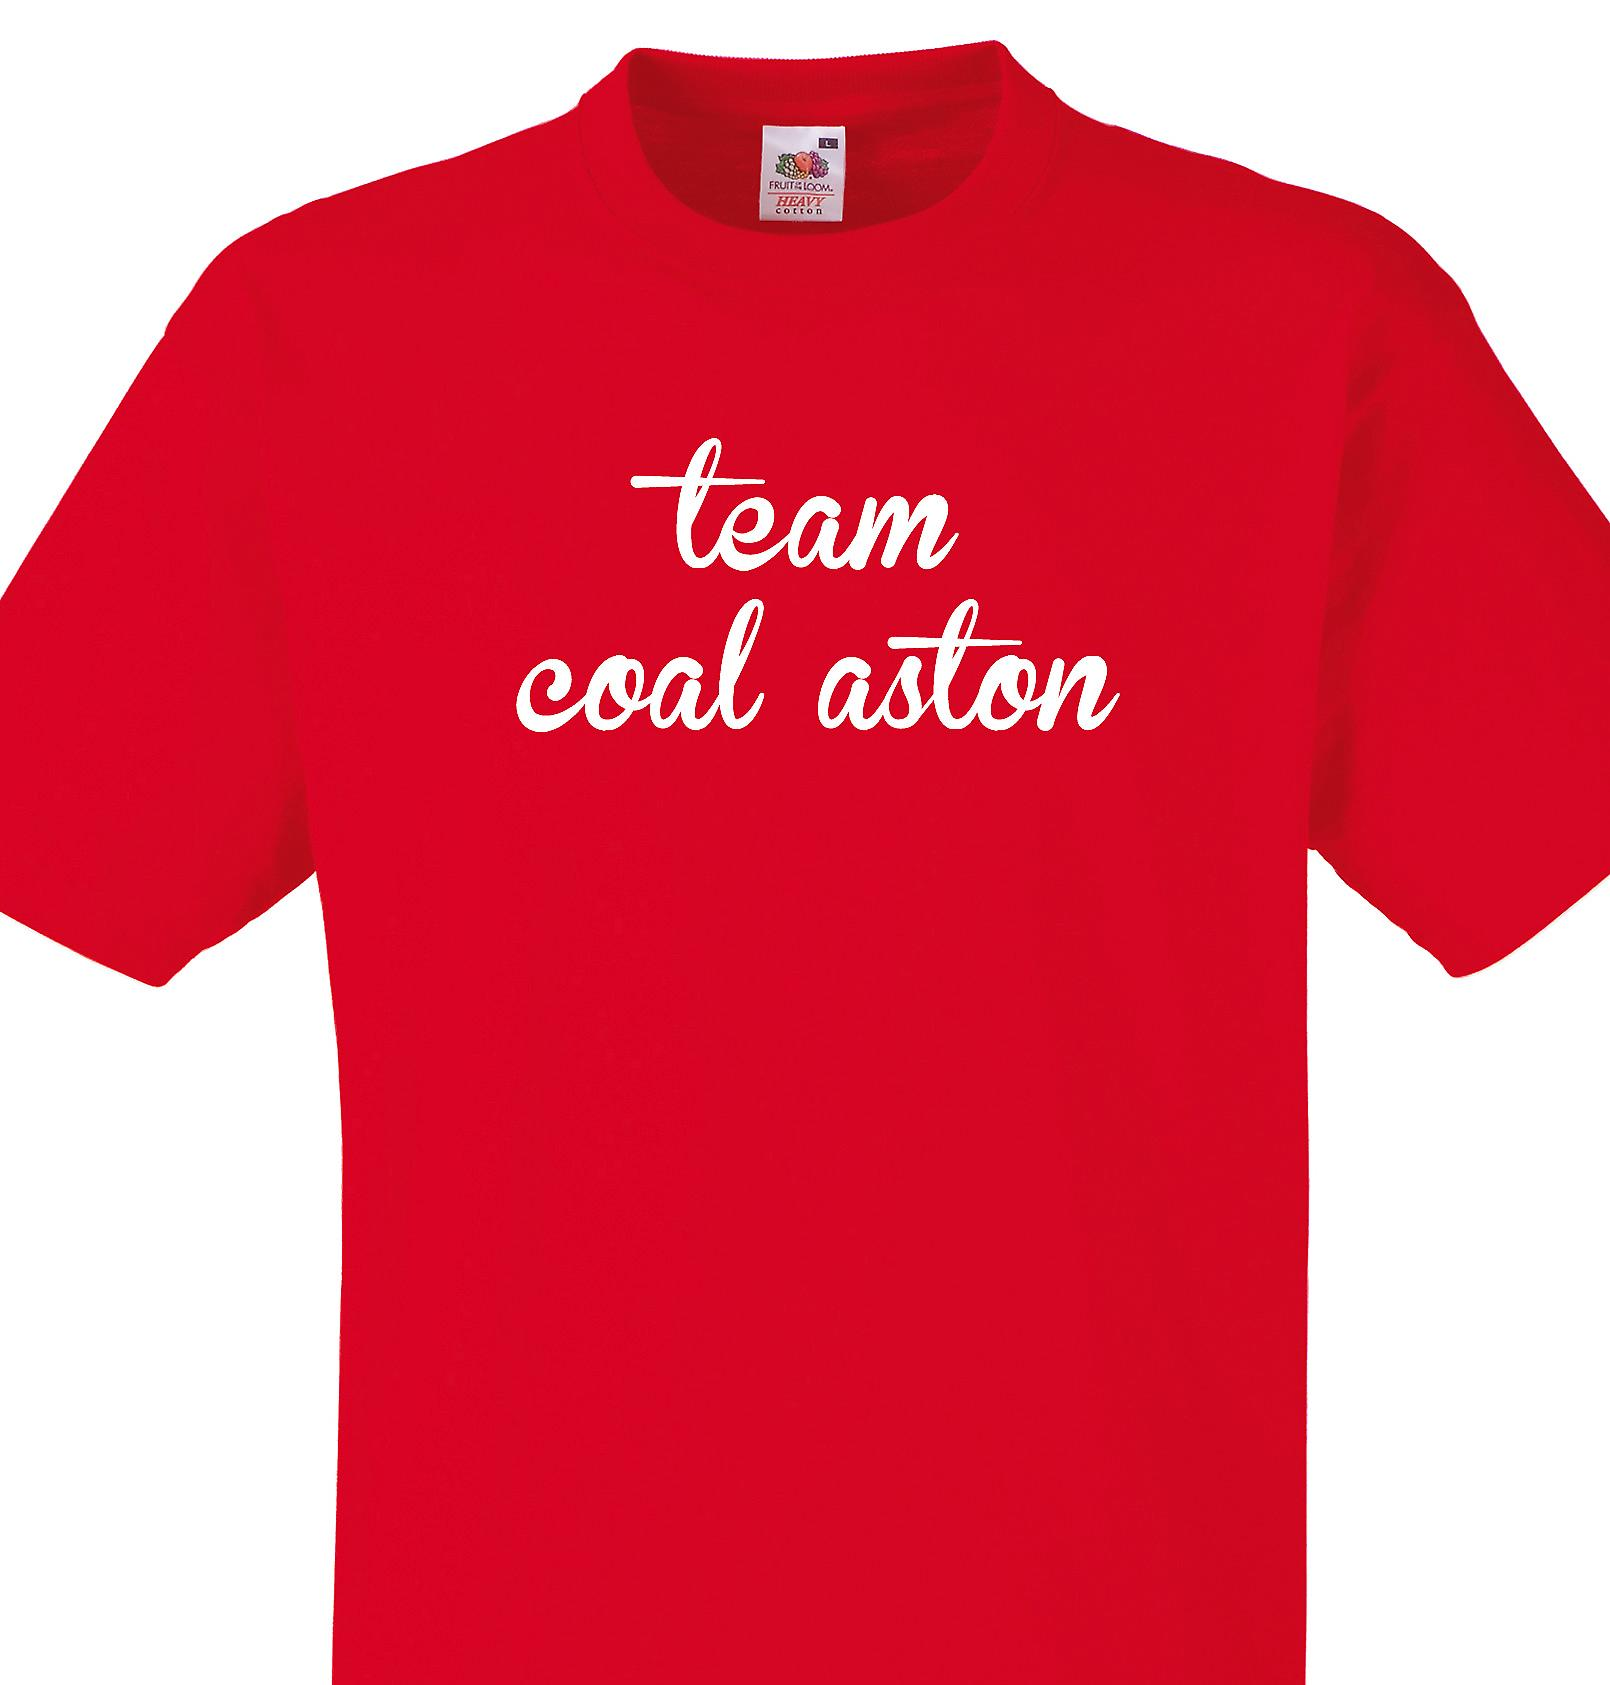 Team Coal aston Red T shirt